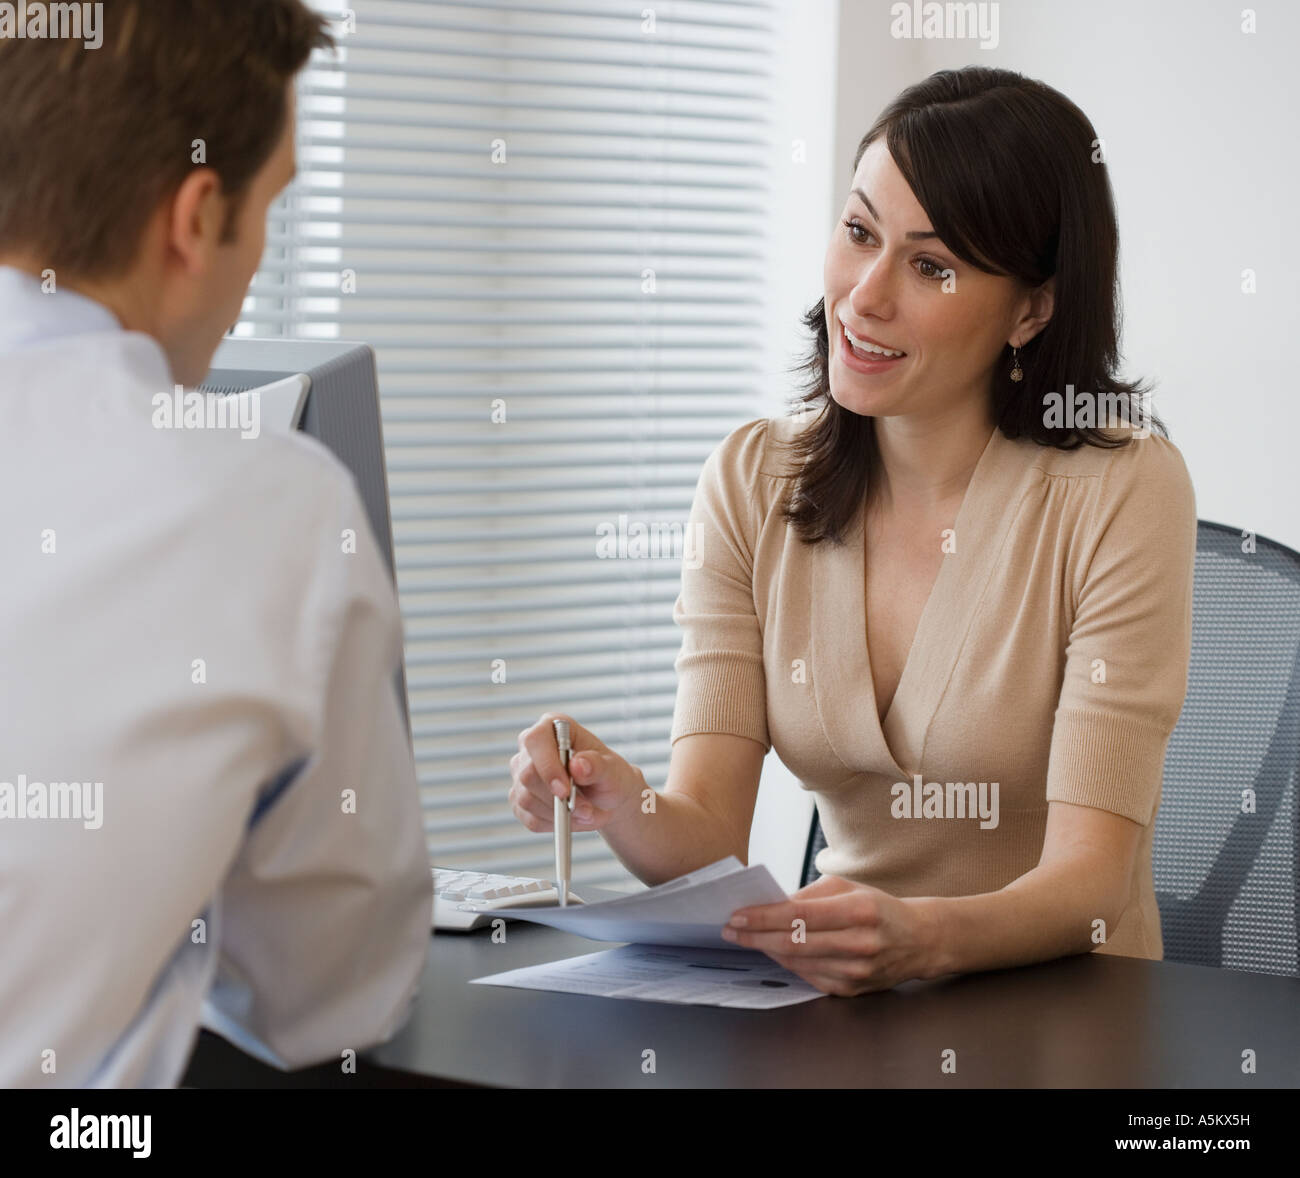 Businesswoman talking to co worker at desk - Stock Image